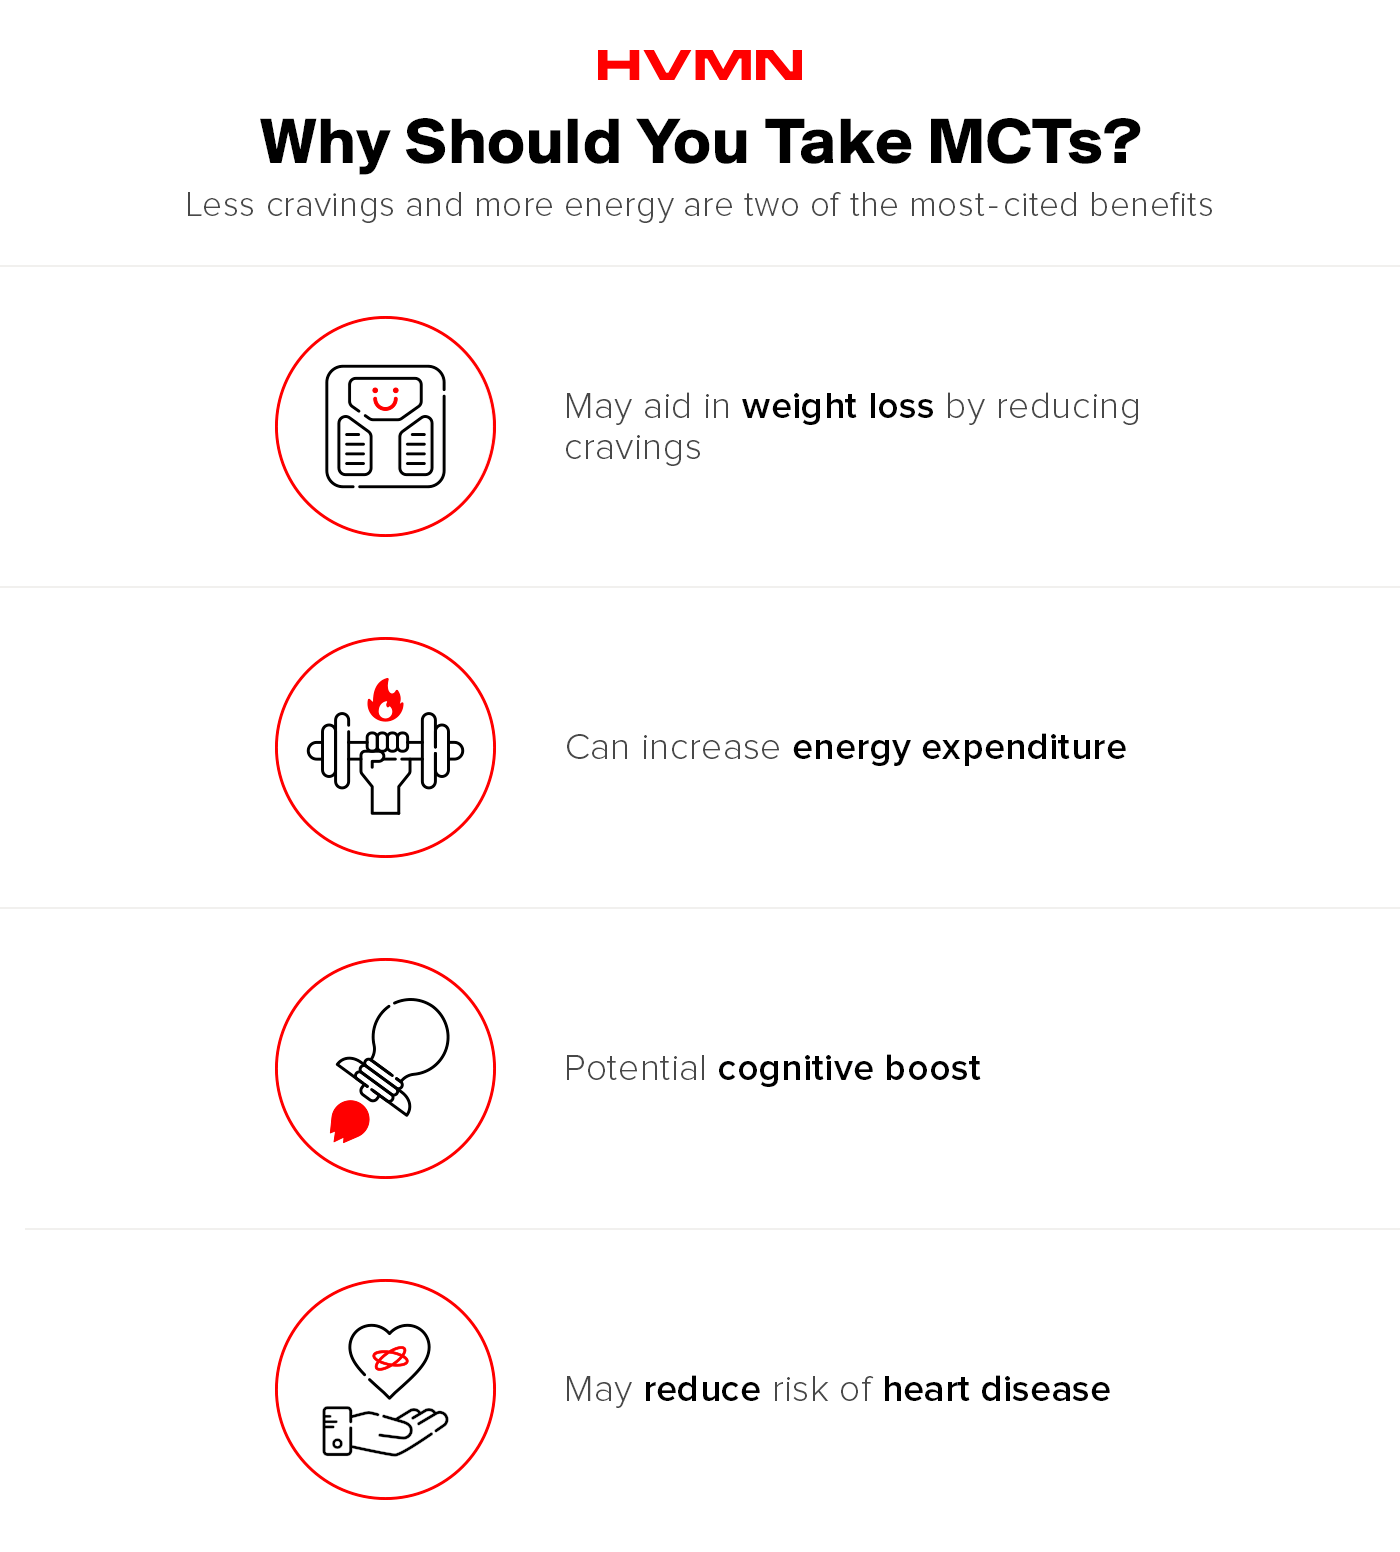 MCTs can aid in weight loss, increasing energy expenditure, improving cognition, and reducing the risk of heart disease.